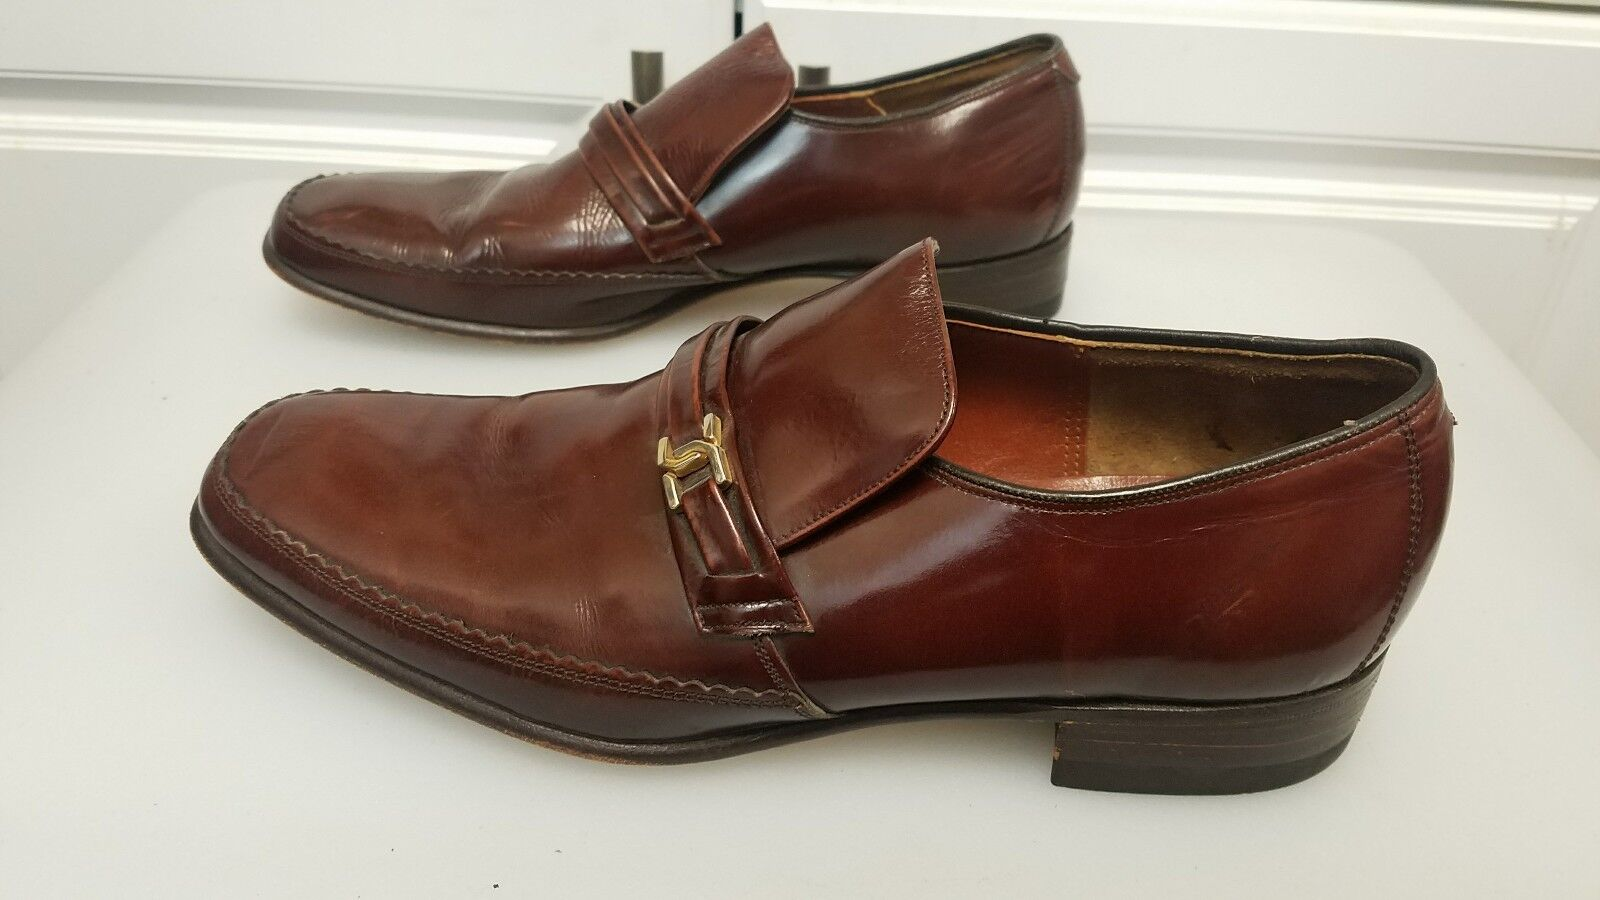 Barker Novas rockabilly leather men shoes - size 6.5 E loafer - great condition